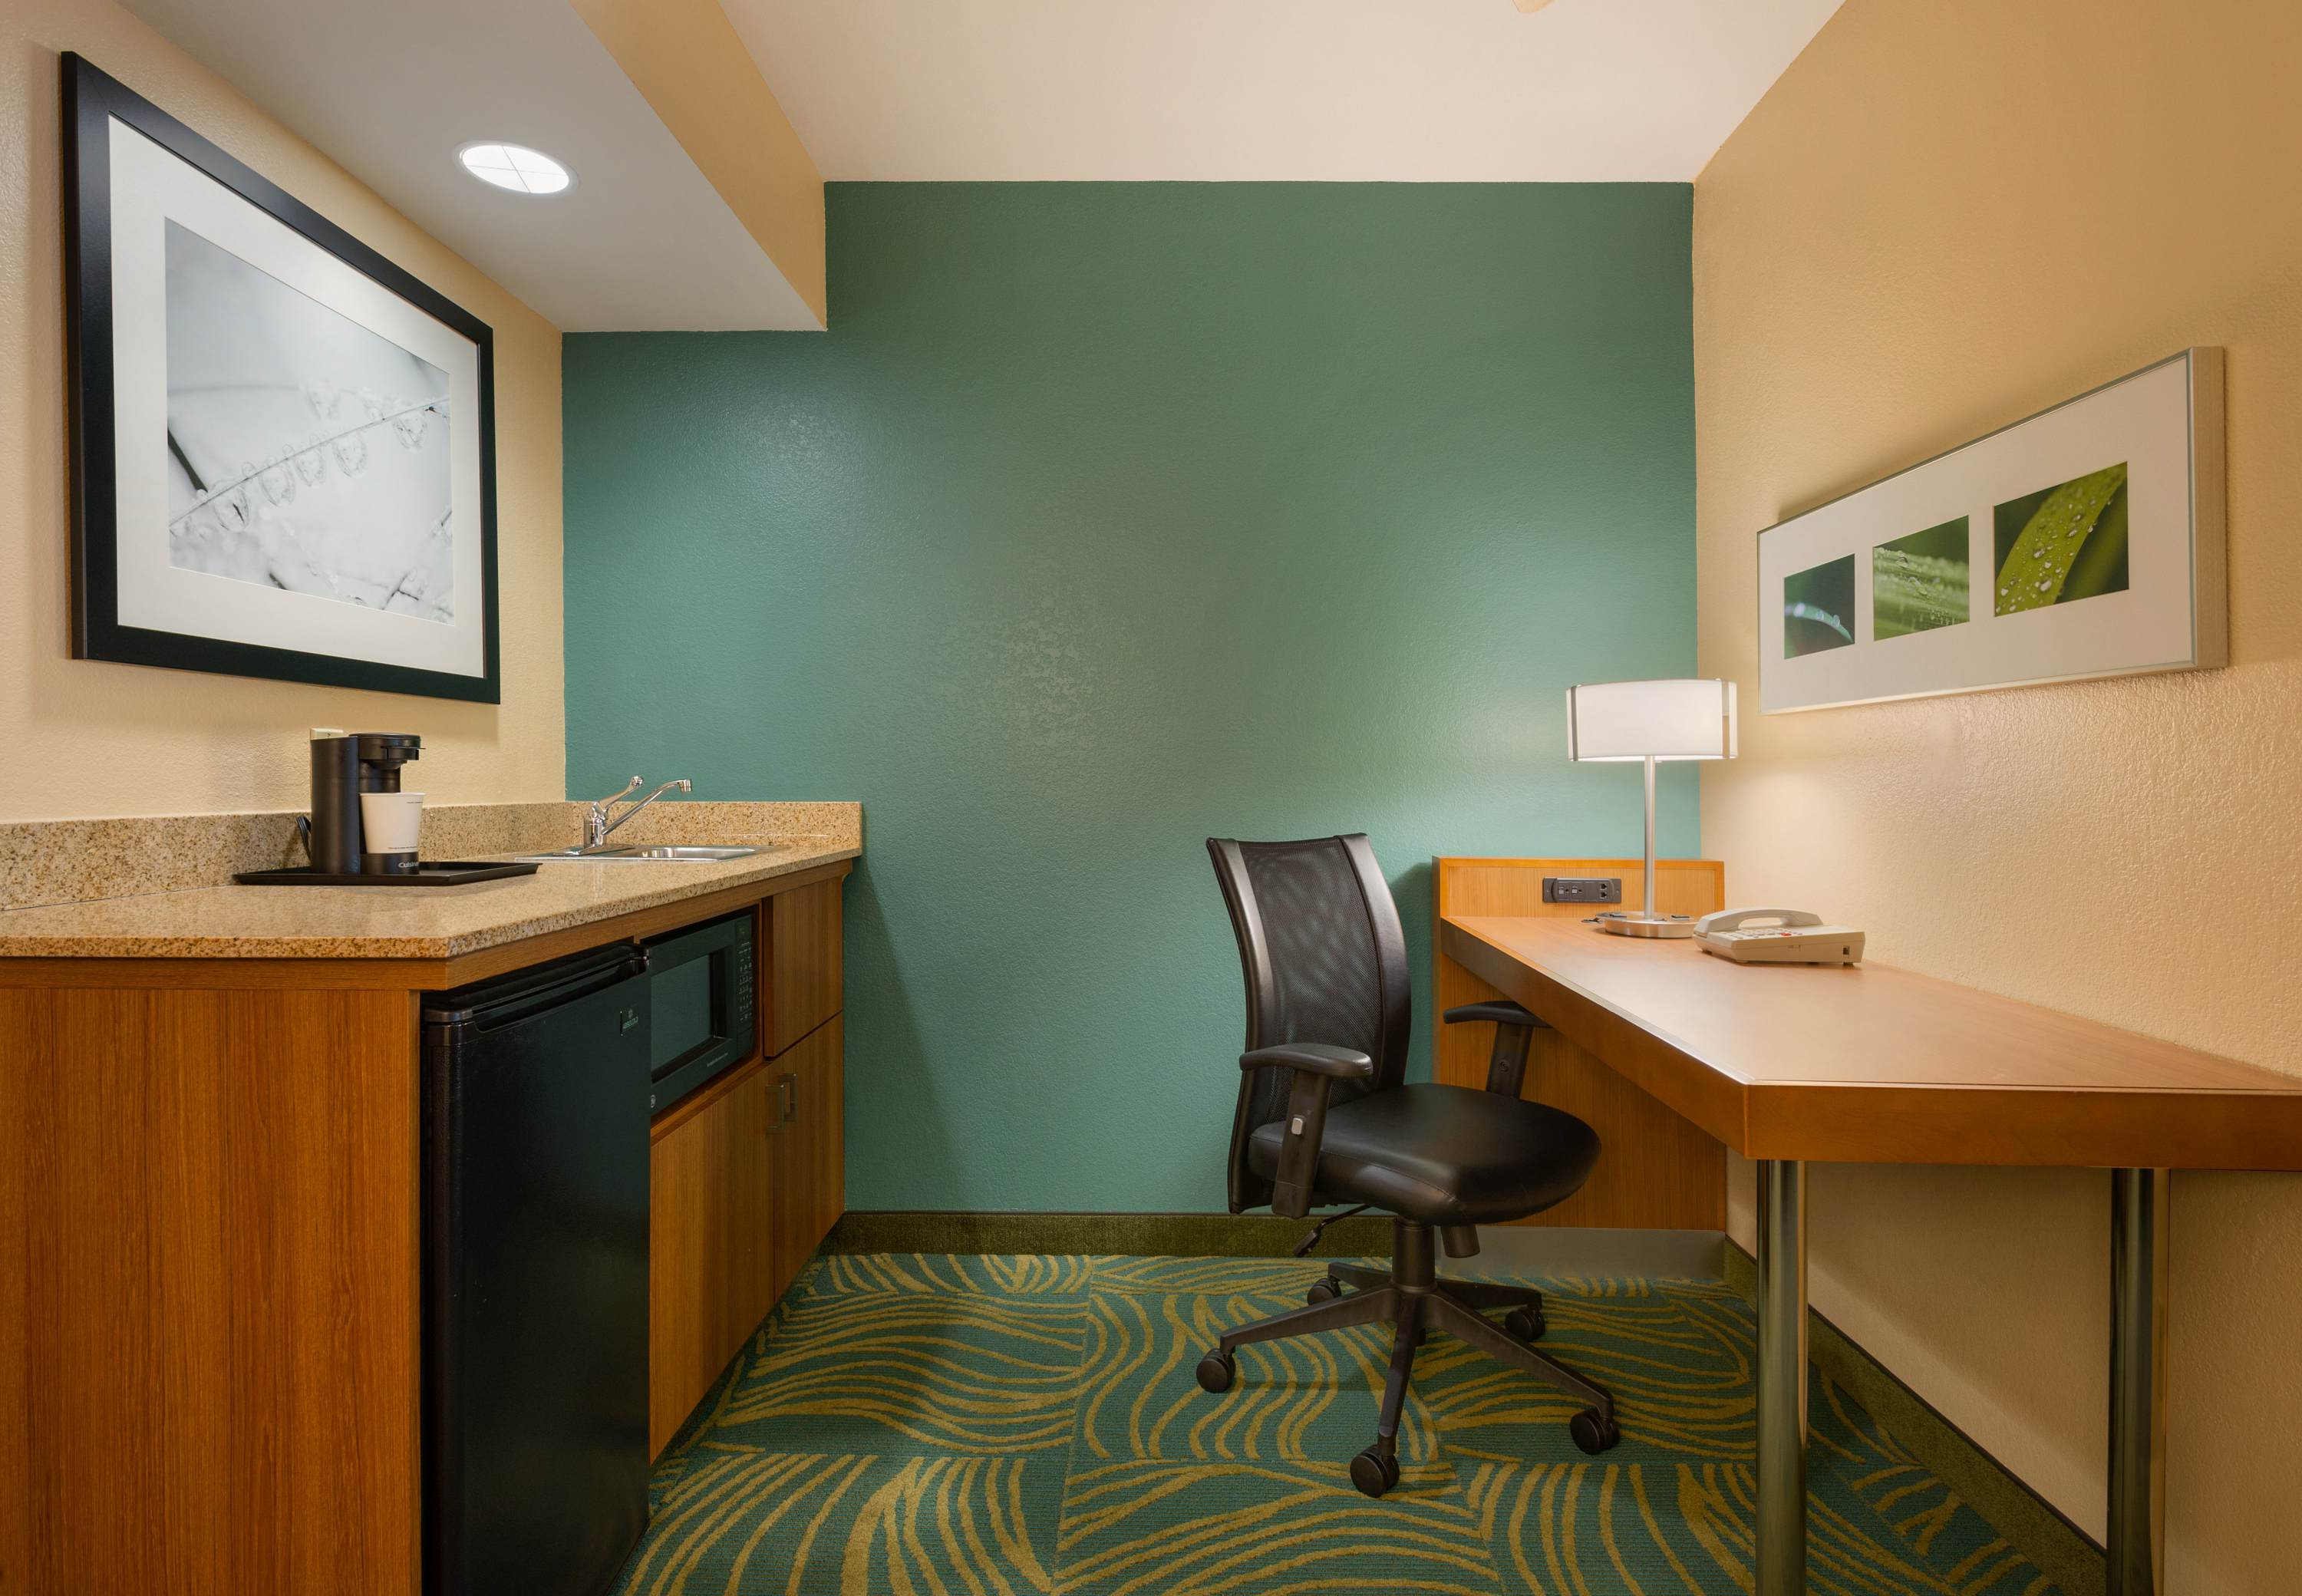 SpringHill Suites by Marriott Little Rock West image 2